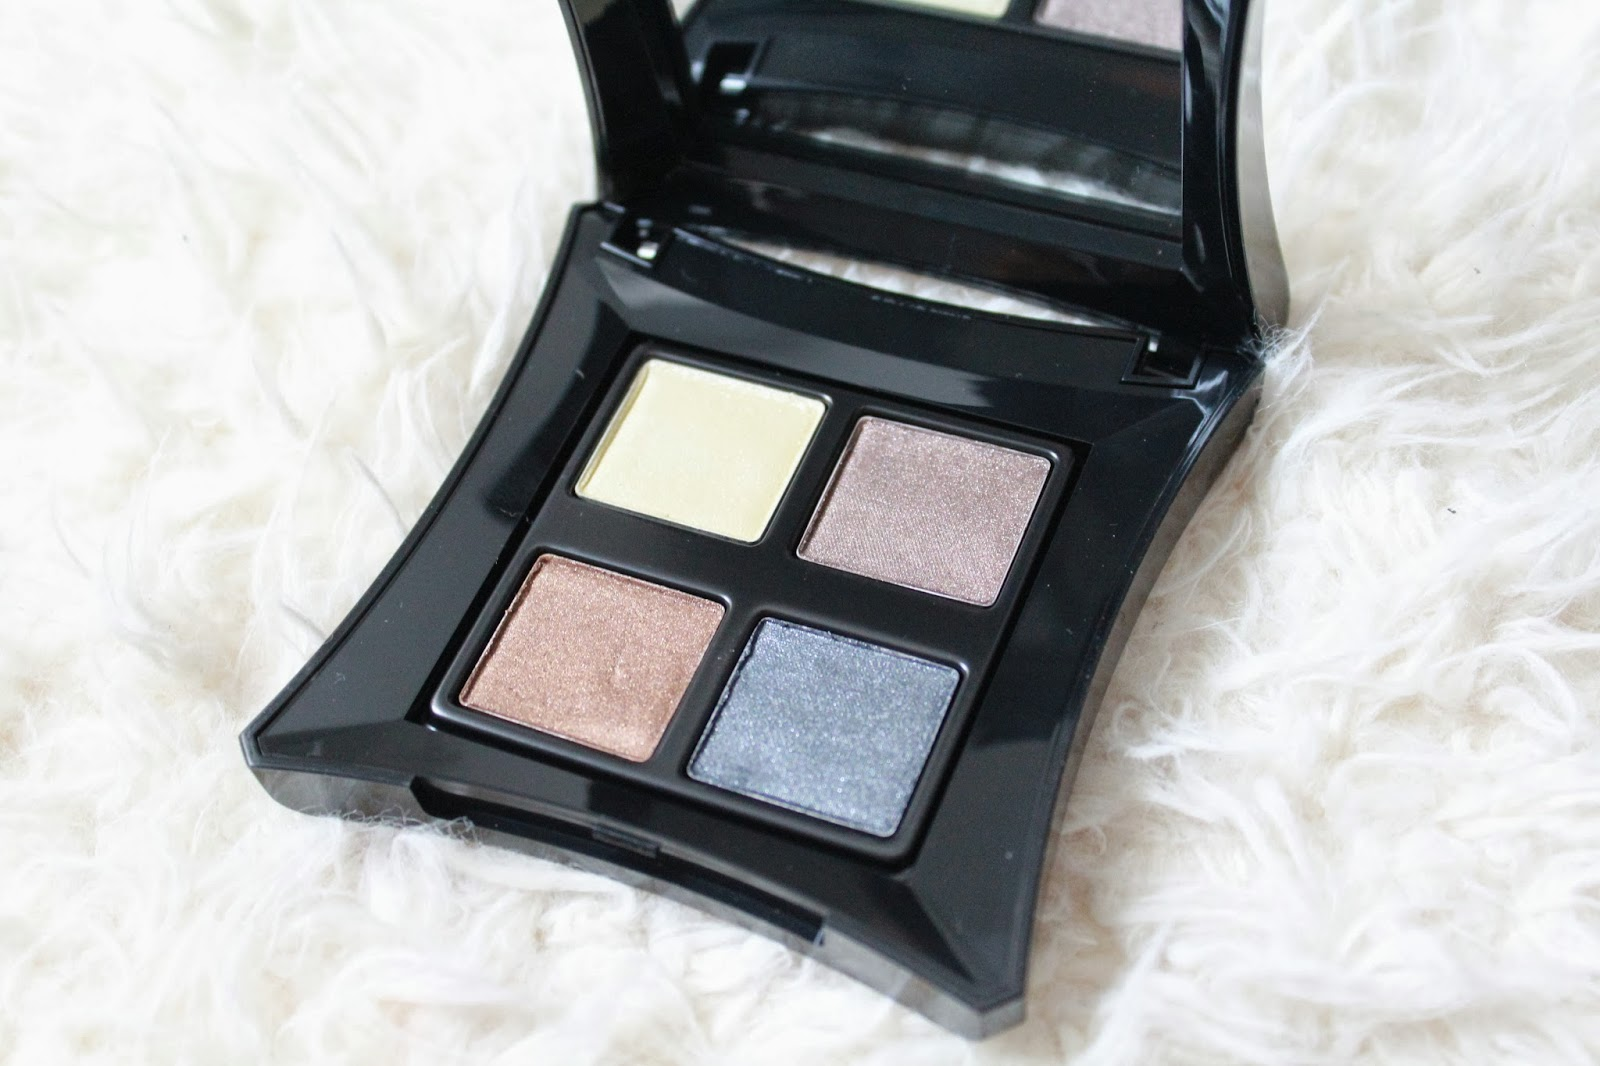 Illamasqua Reflection Palette